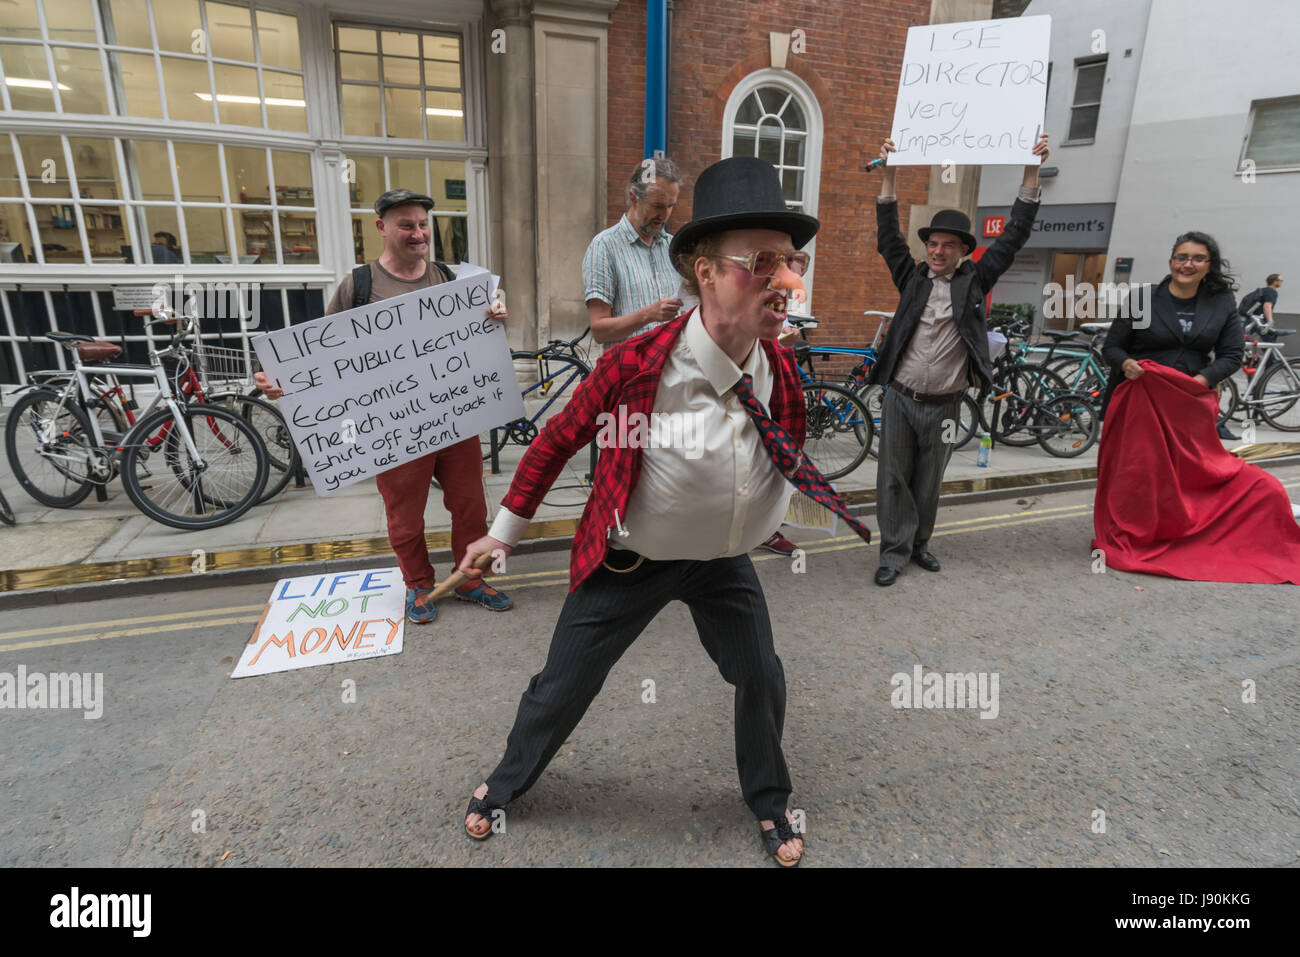 London, UK. 30th May 2017. Life Not Money at the LSE staged street theatre in support of the London School of Economics Stock Photo